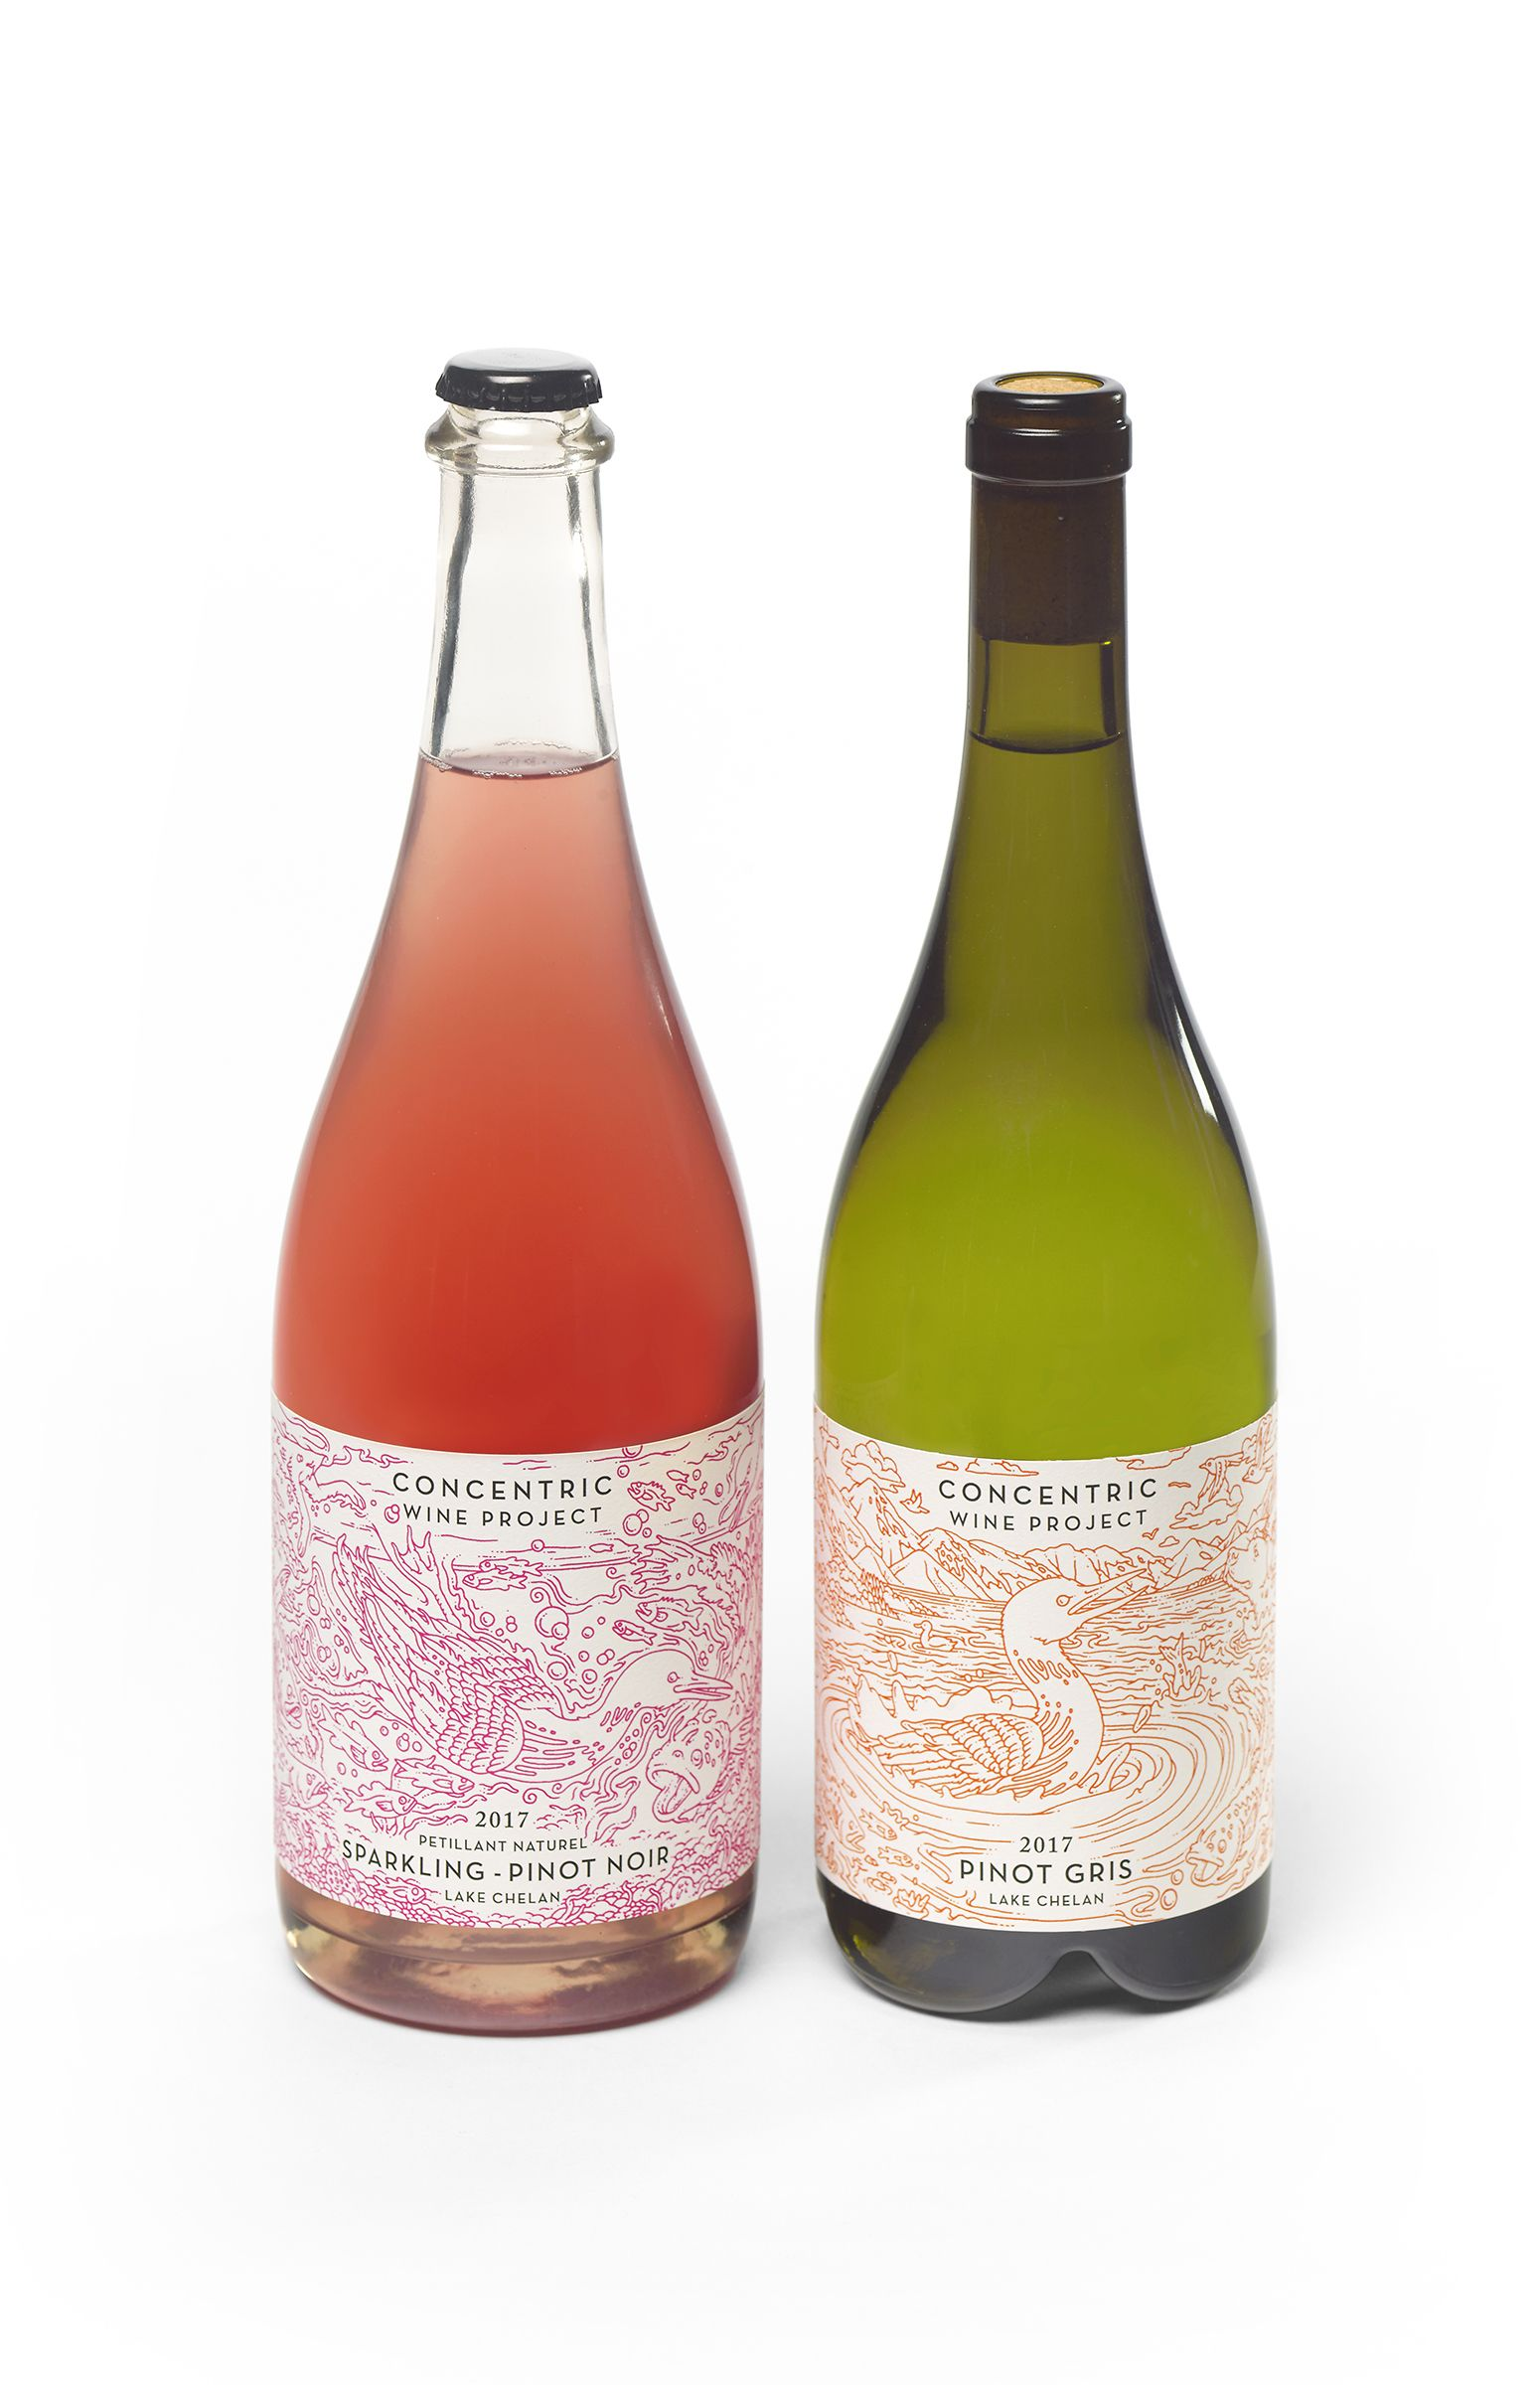 Concentric Wine Project Labels By Eric Nyquist With Images Wine Bottle Rose Wine Bottle Bottle